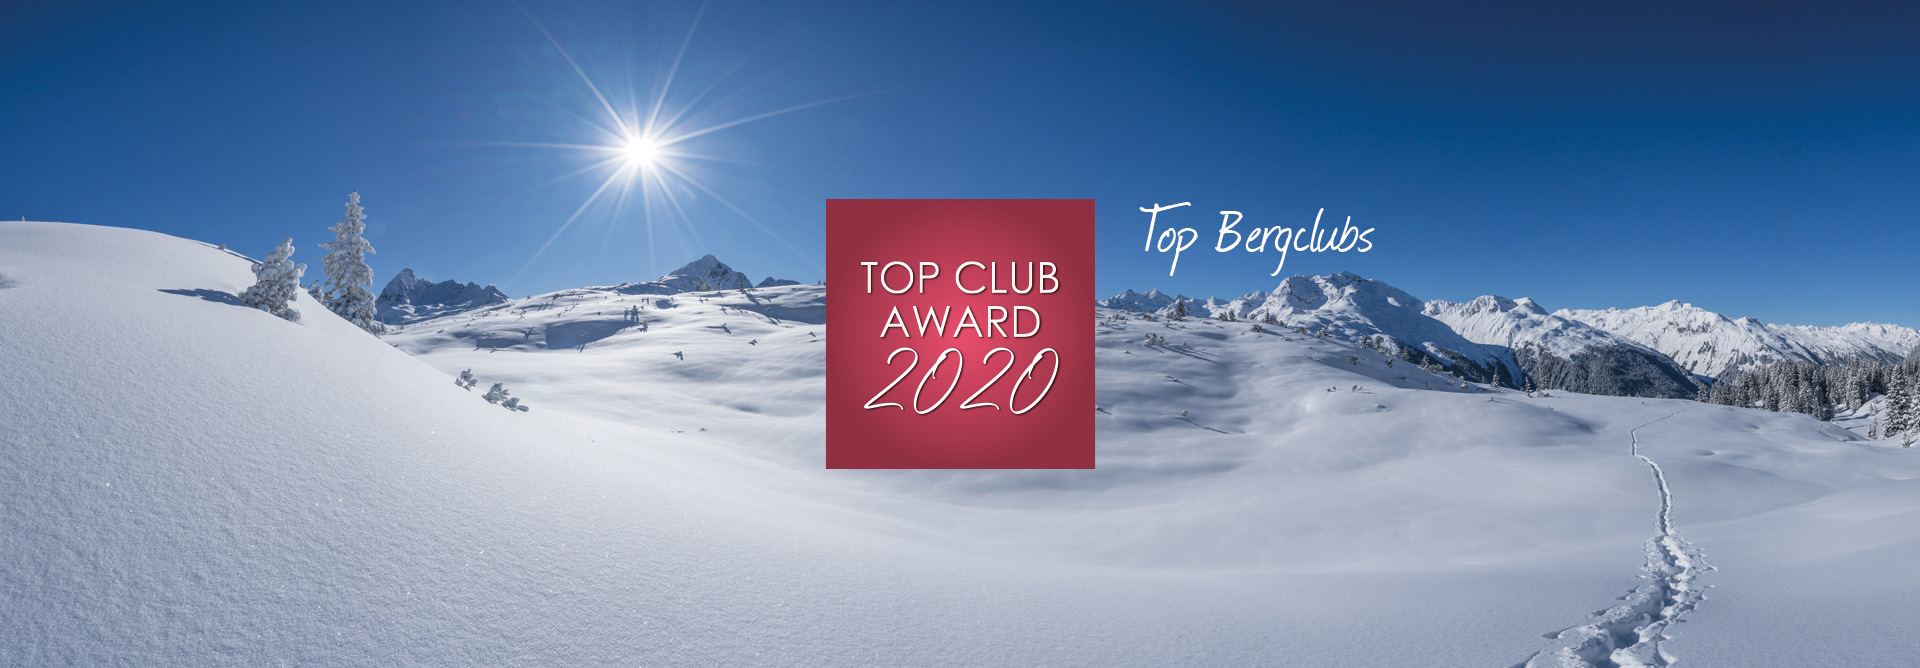 Top Clubs Berg